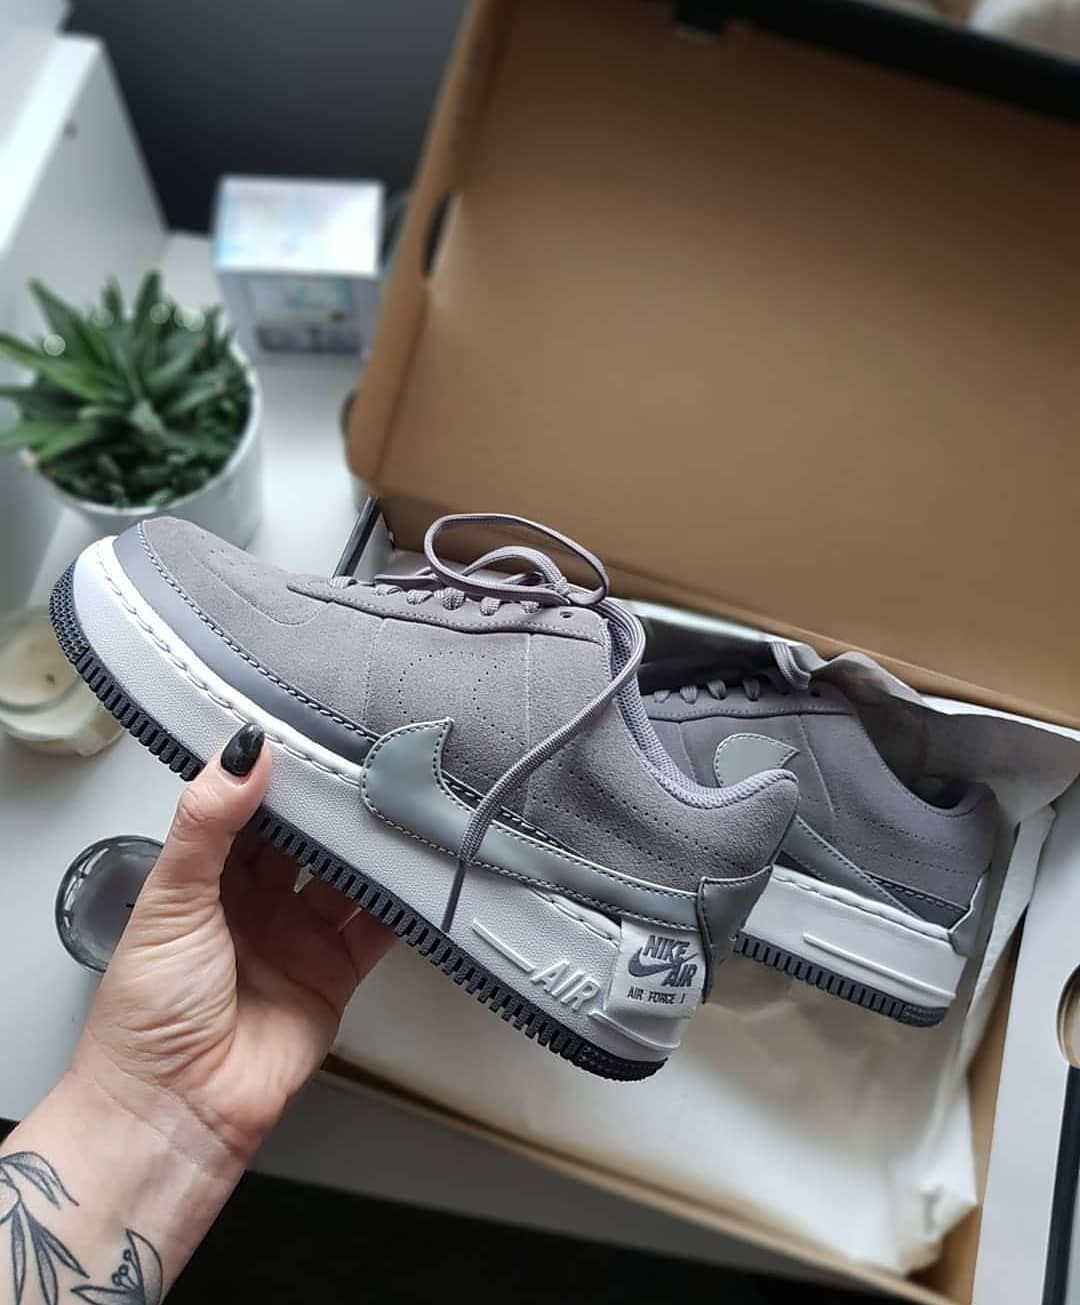 Yay or nay?  . . . . #shoes #shoe #kicks #instashoes #instakicks #sneakers #snea..., #* #instakicks #instashoes #kicks #nike #shoe #shoes #sneaker #sneakerhead #sneakerheads #sneakers #solecollector #soleonfire